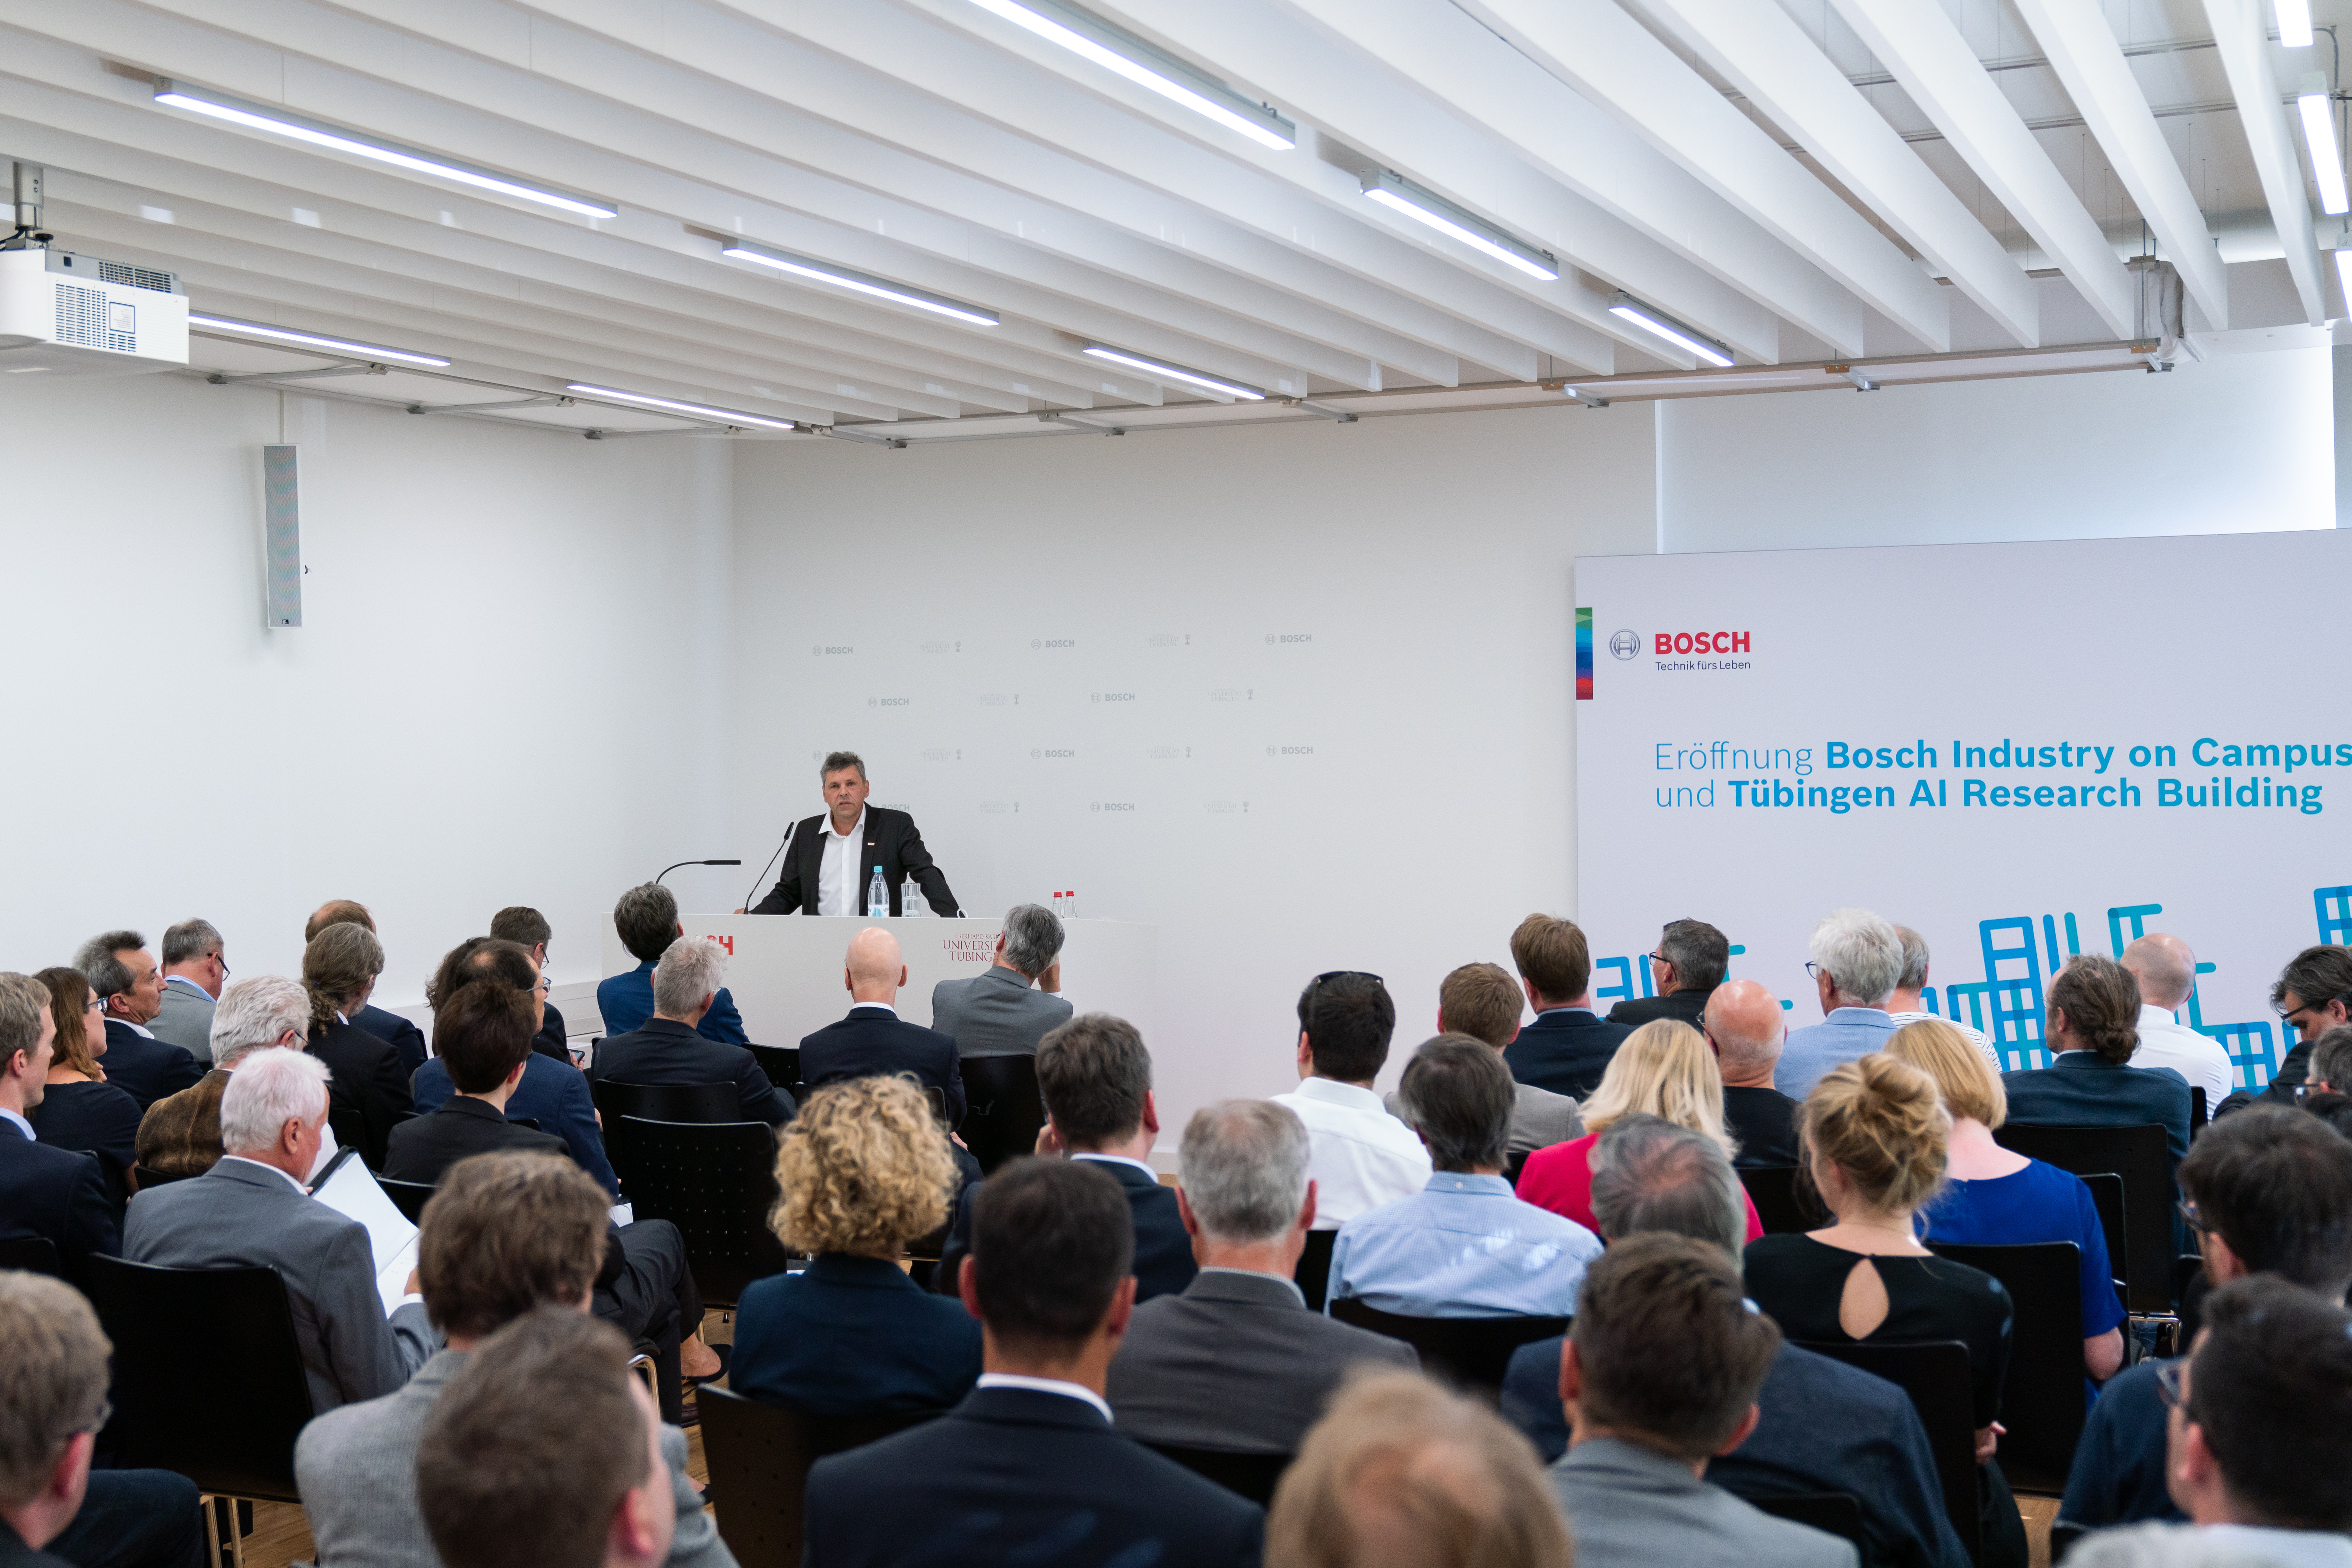 """""""The planned AI campus will help turn the region into one of the world's leading centers for the research and application of artificial intelligence."""" Dr. Michael Bolle (CDO/CTO, Robert Bosch GmbH)."""